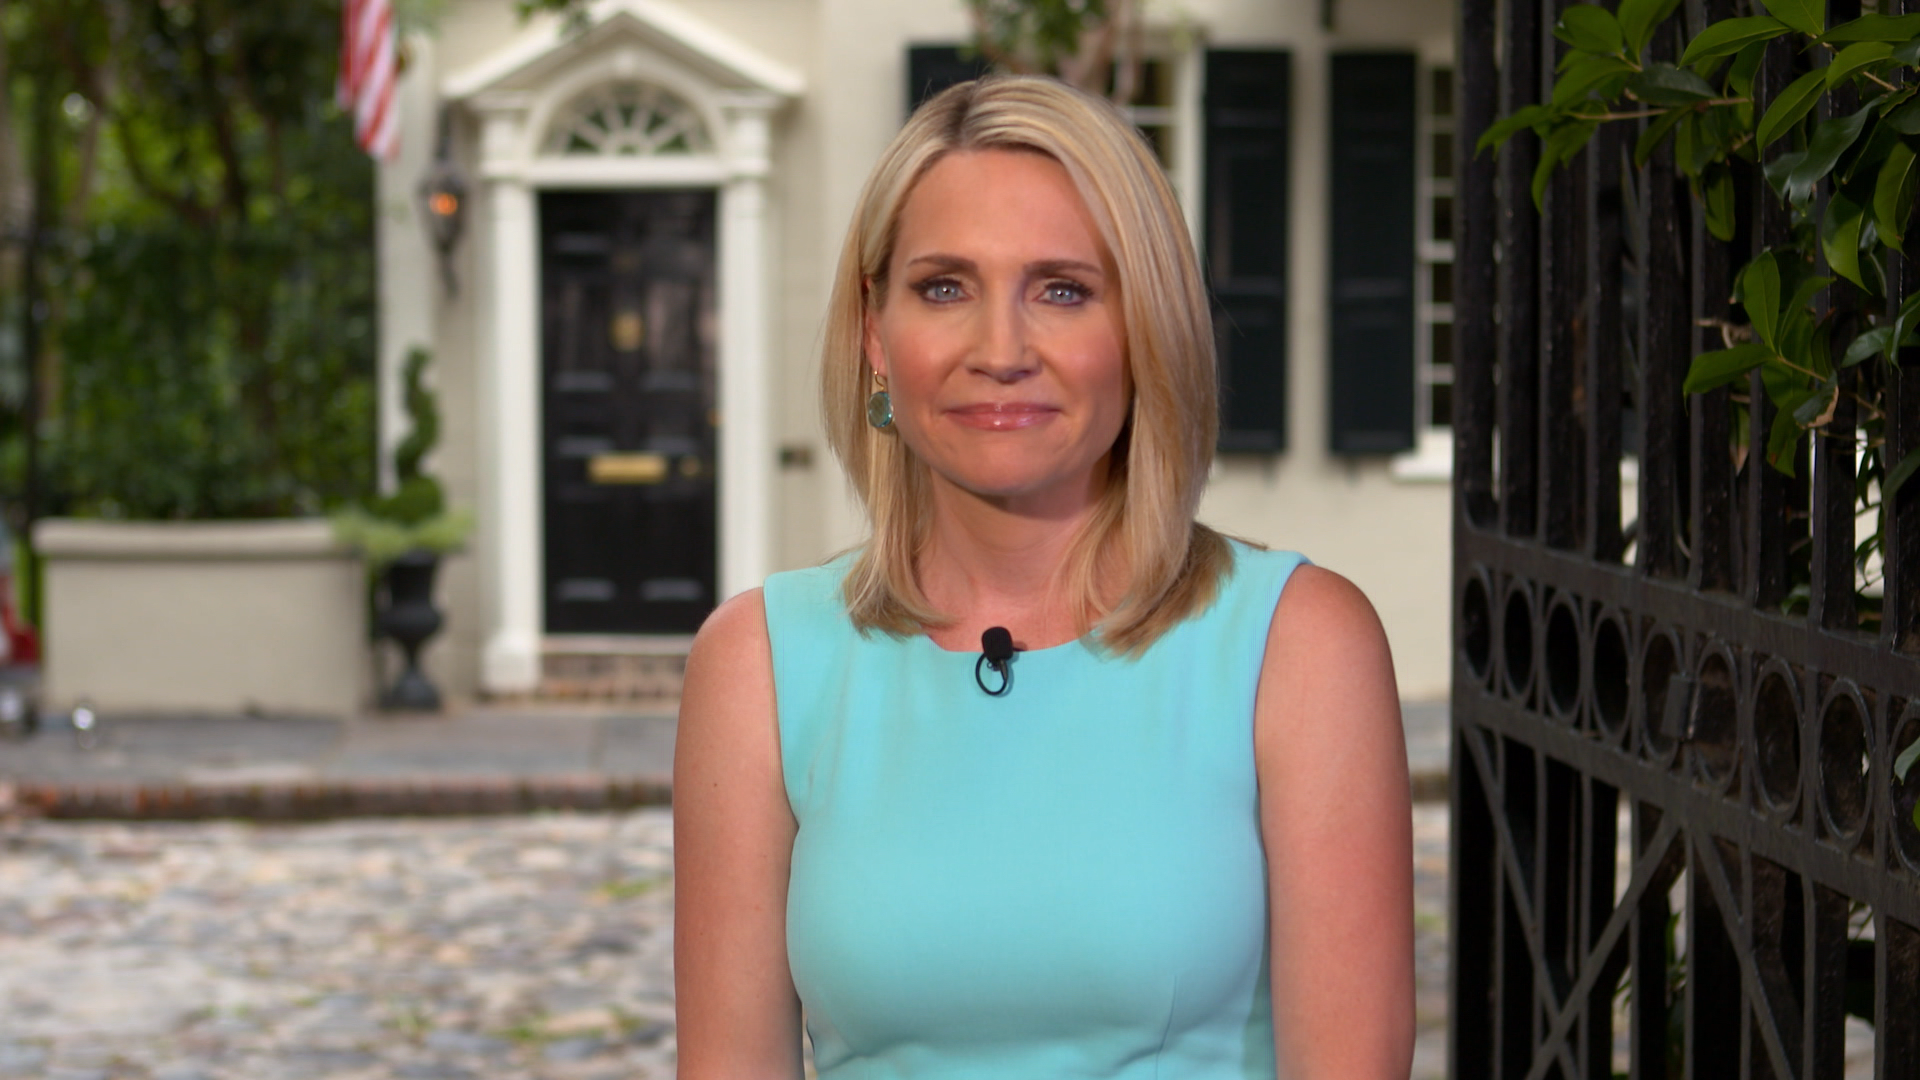 Andrea Canning Previews 'Finding Savanna' - NBC News